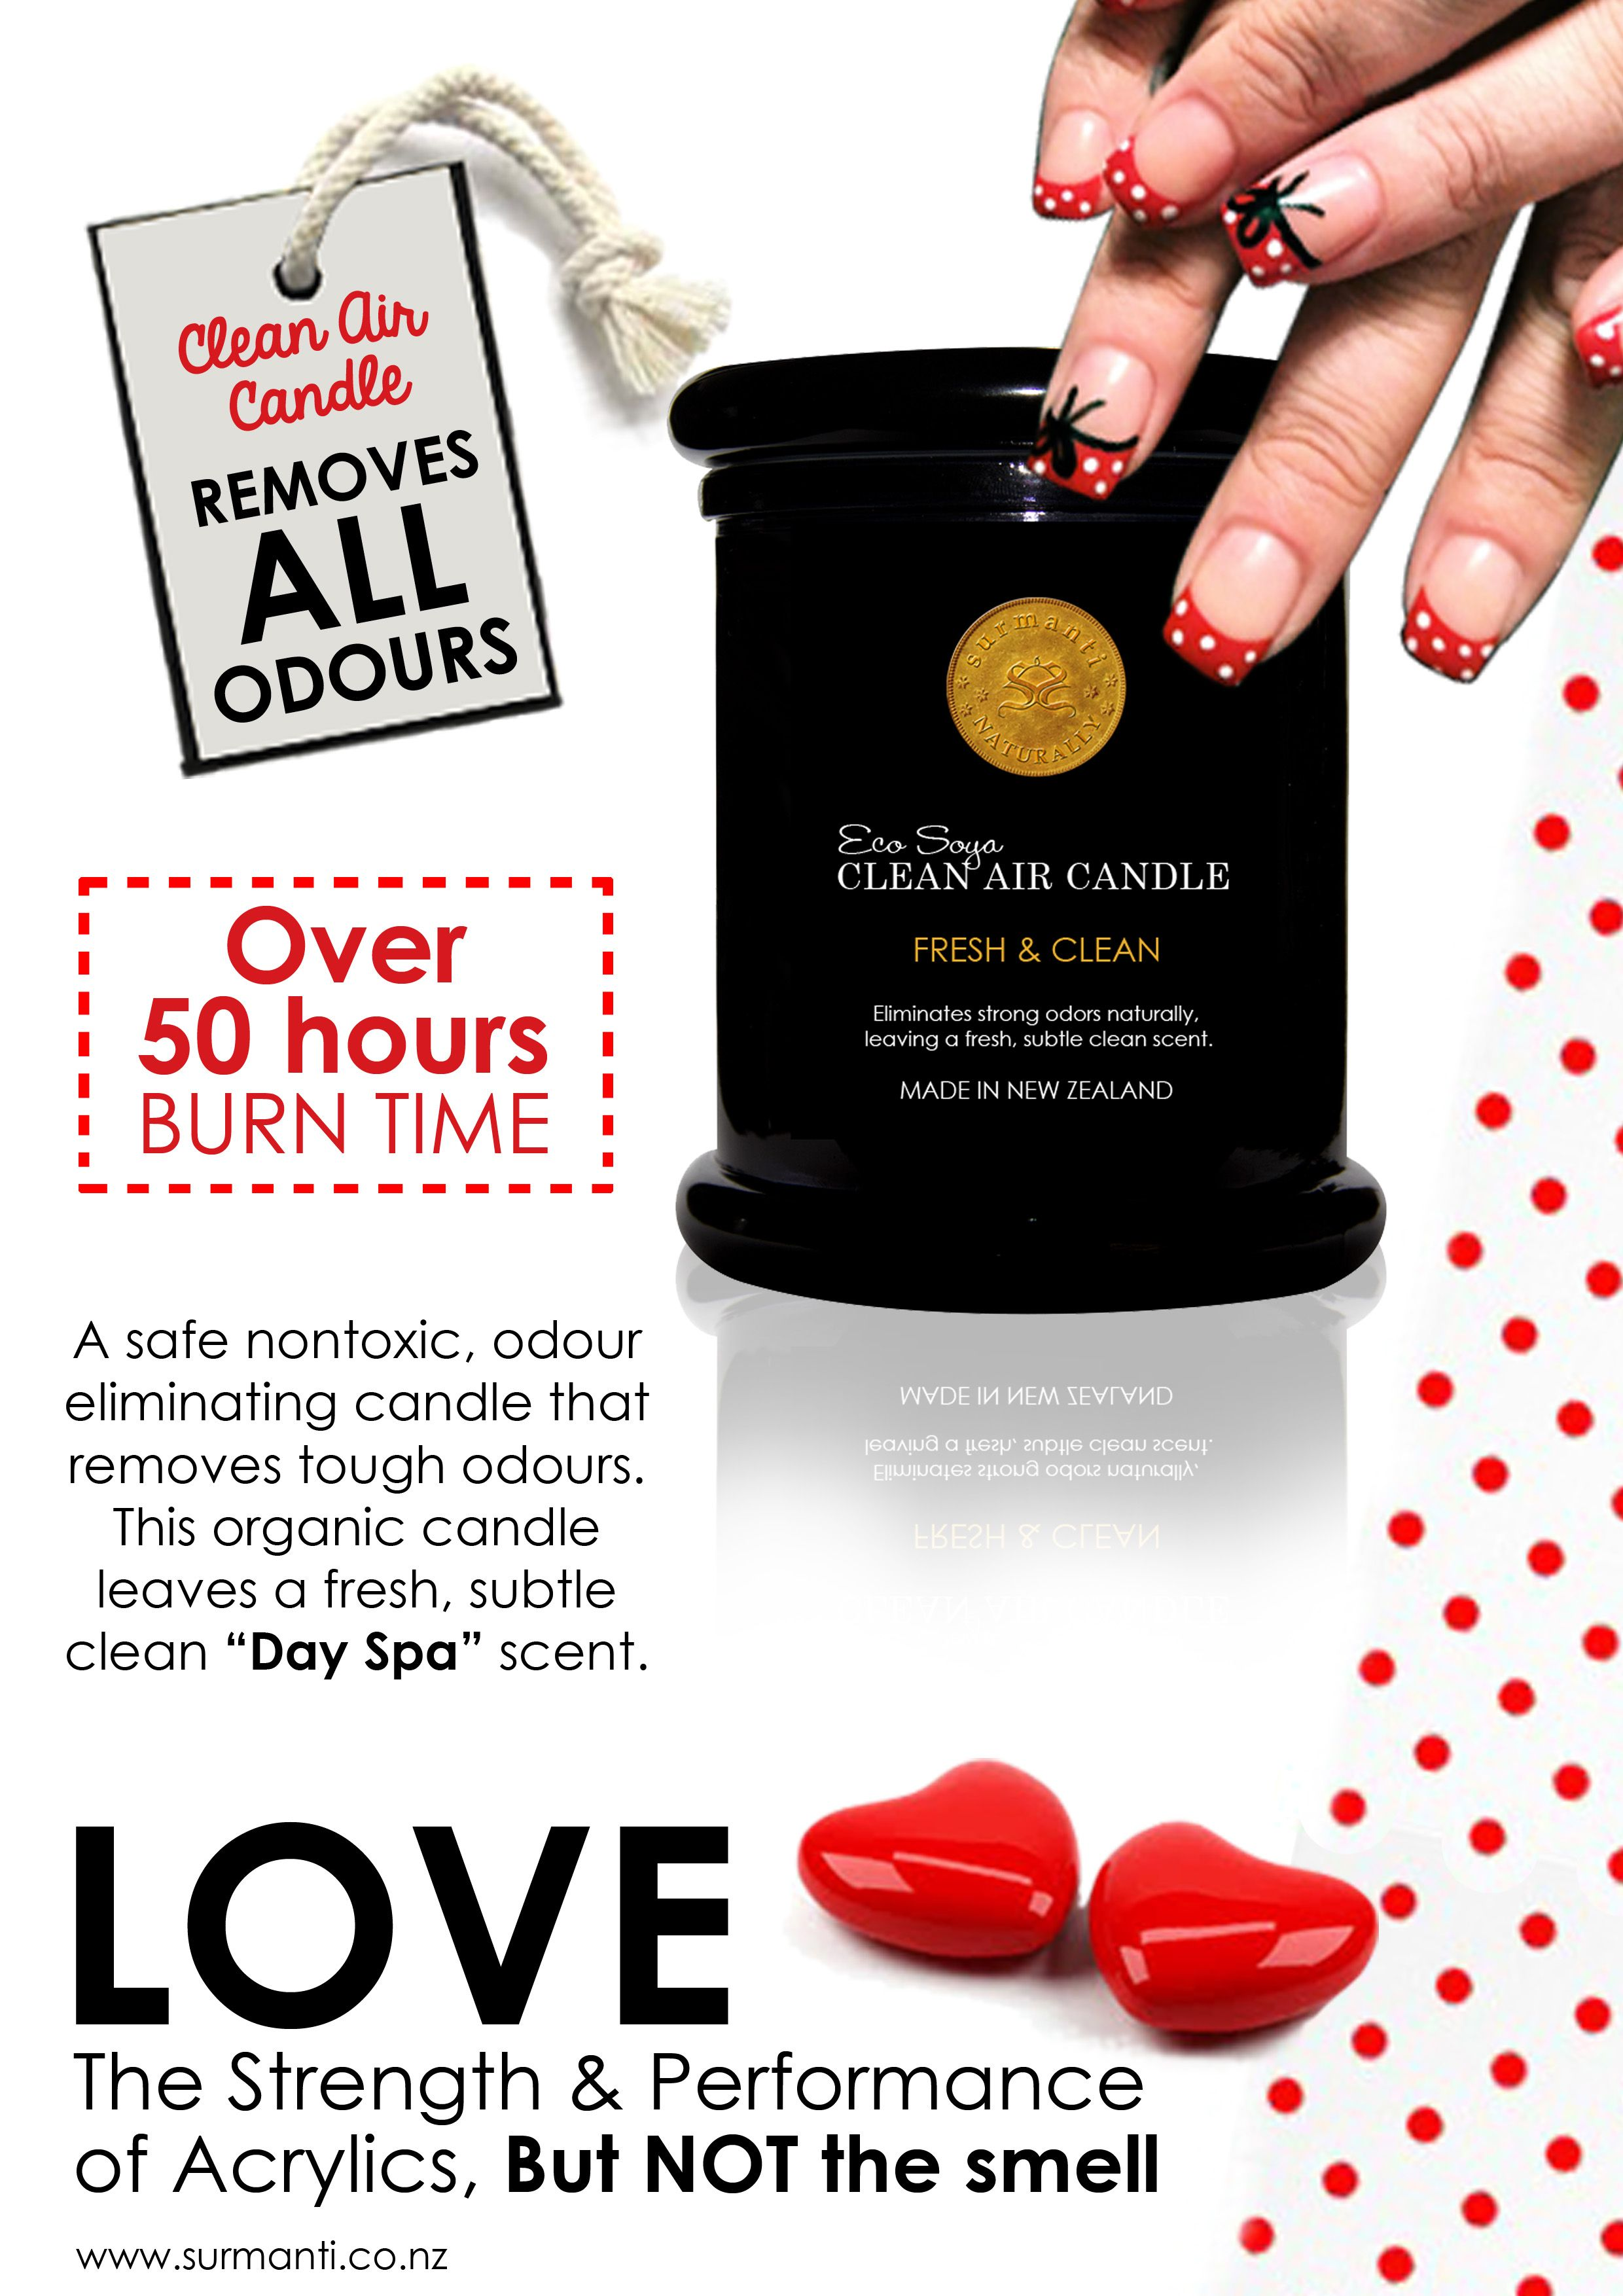 This is a shout out to all the Nail Techs...If you haven't tried this amazing candle in your salon, now is the time. It eliminates - Not masks all the smells :)